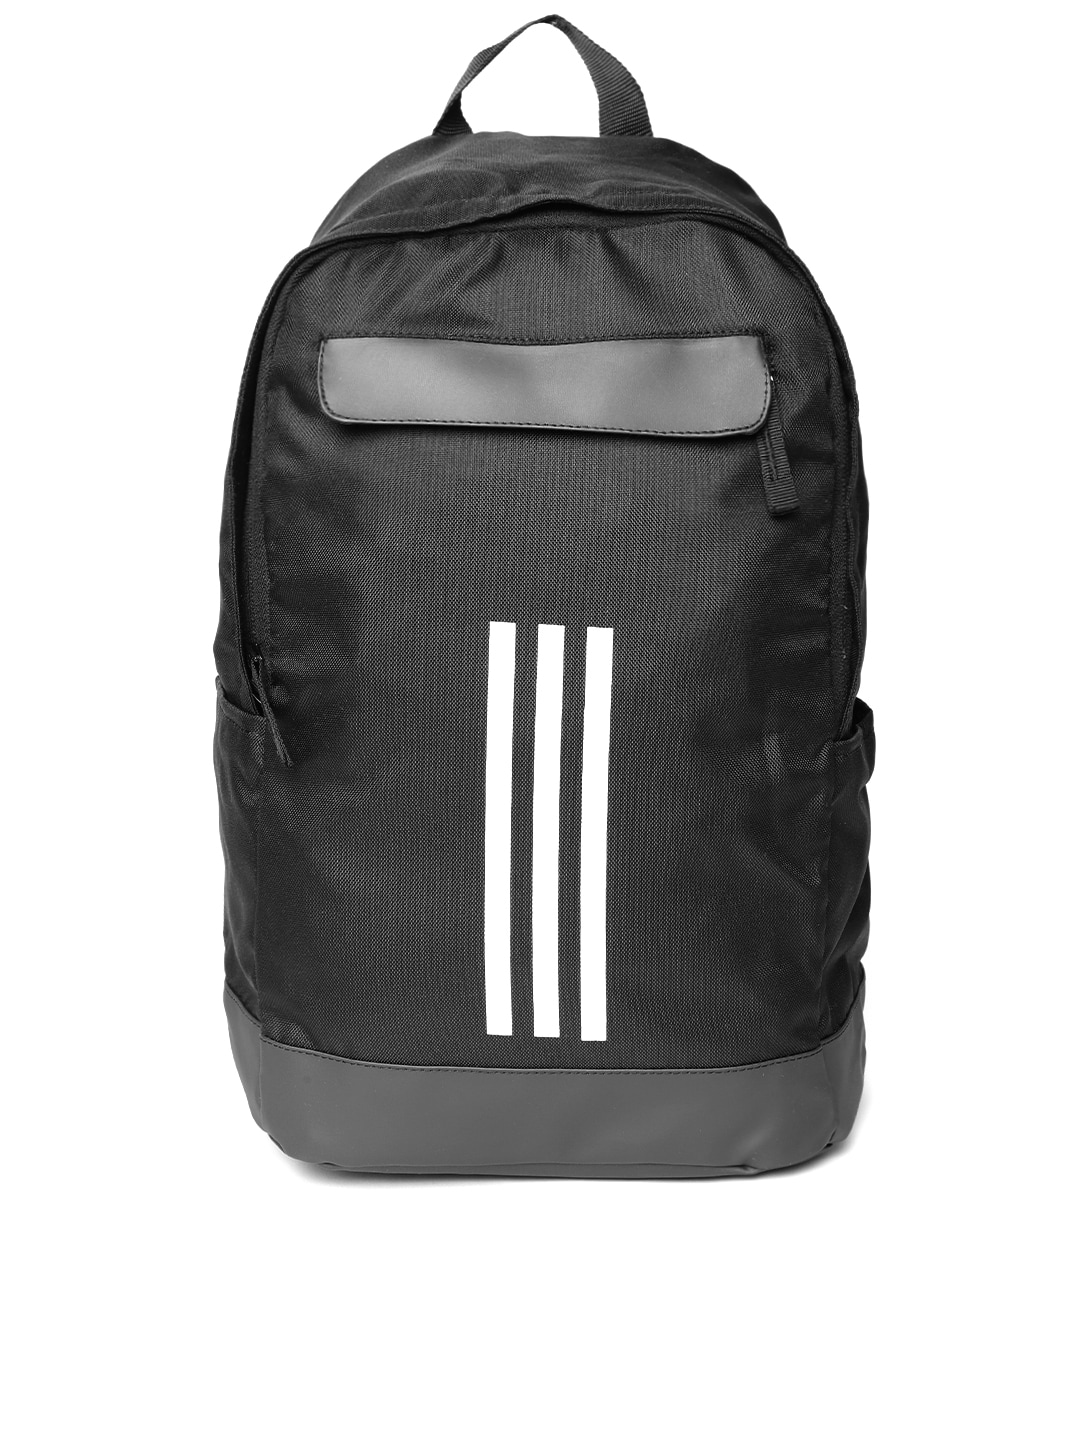 Adidas Bags Backpacks - Buy Adidas Bags Backpacks online in India c1e6e8a8a04a0